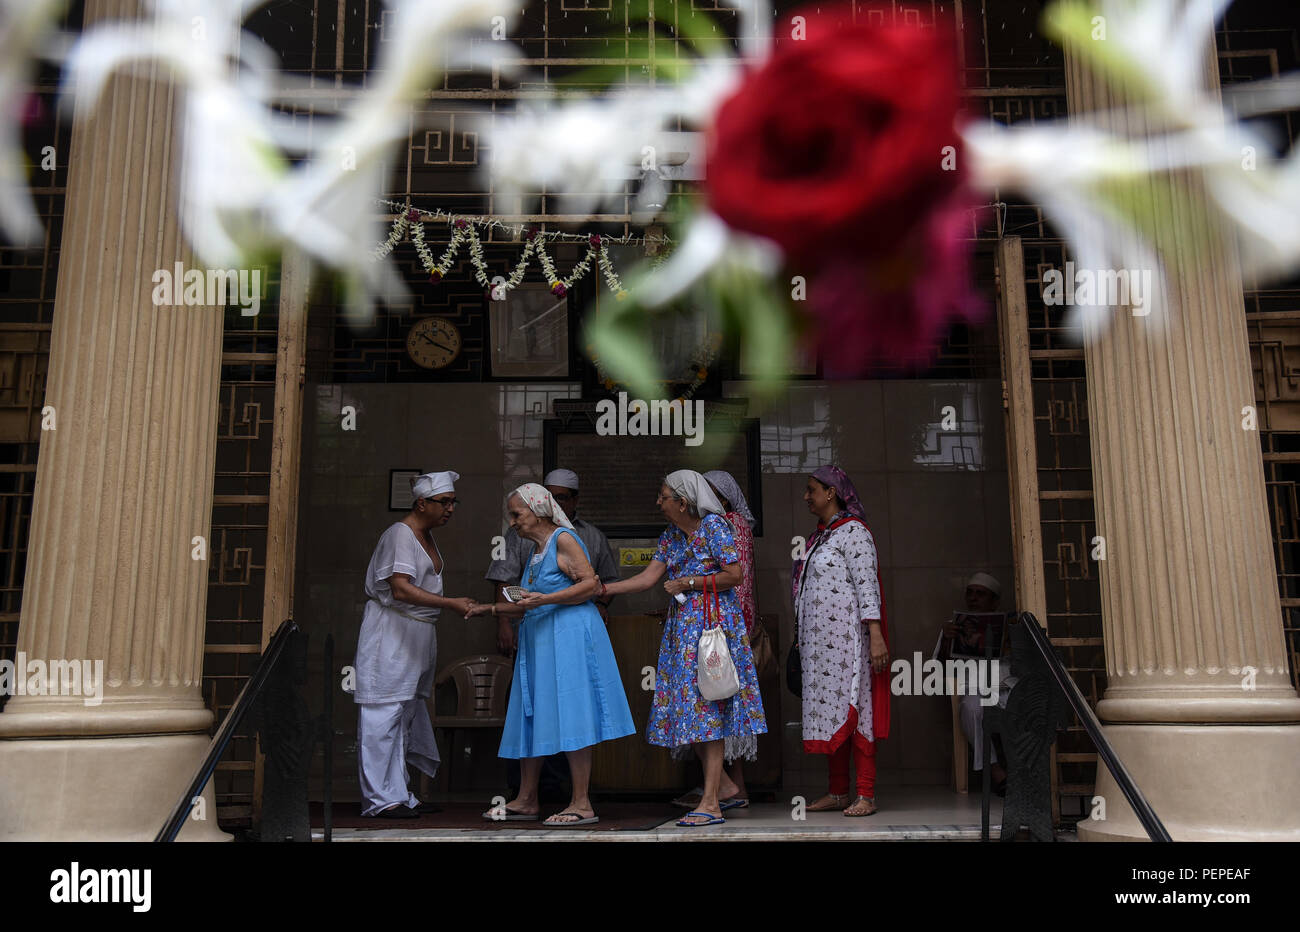 Mumbai, India. 17th Aug, 2018. Indian Zoroastrians or Parsi people greet each other on the occasion of Nowruz, the Parsi New Year day, in Mumbai, India, Aug. 17, 2018. Parsis are the followers of the ancient Persian religion known as Zoroastrianism, living mostly in India, Iran and Pakistan. Credit: Stringer/Xinhua/Alamy Live News - Stock Image